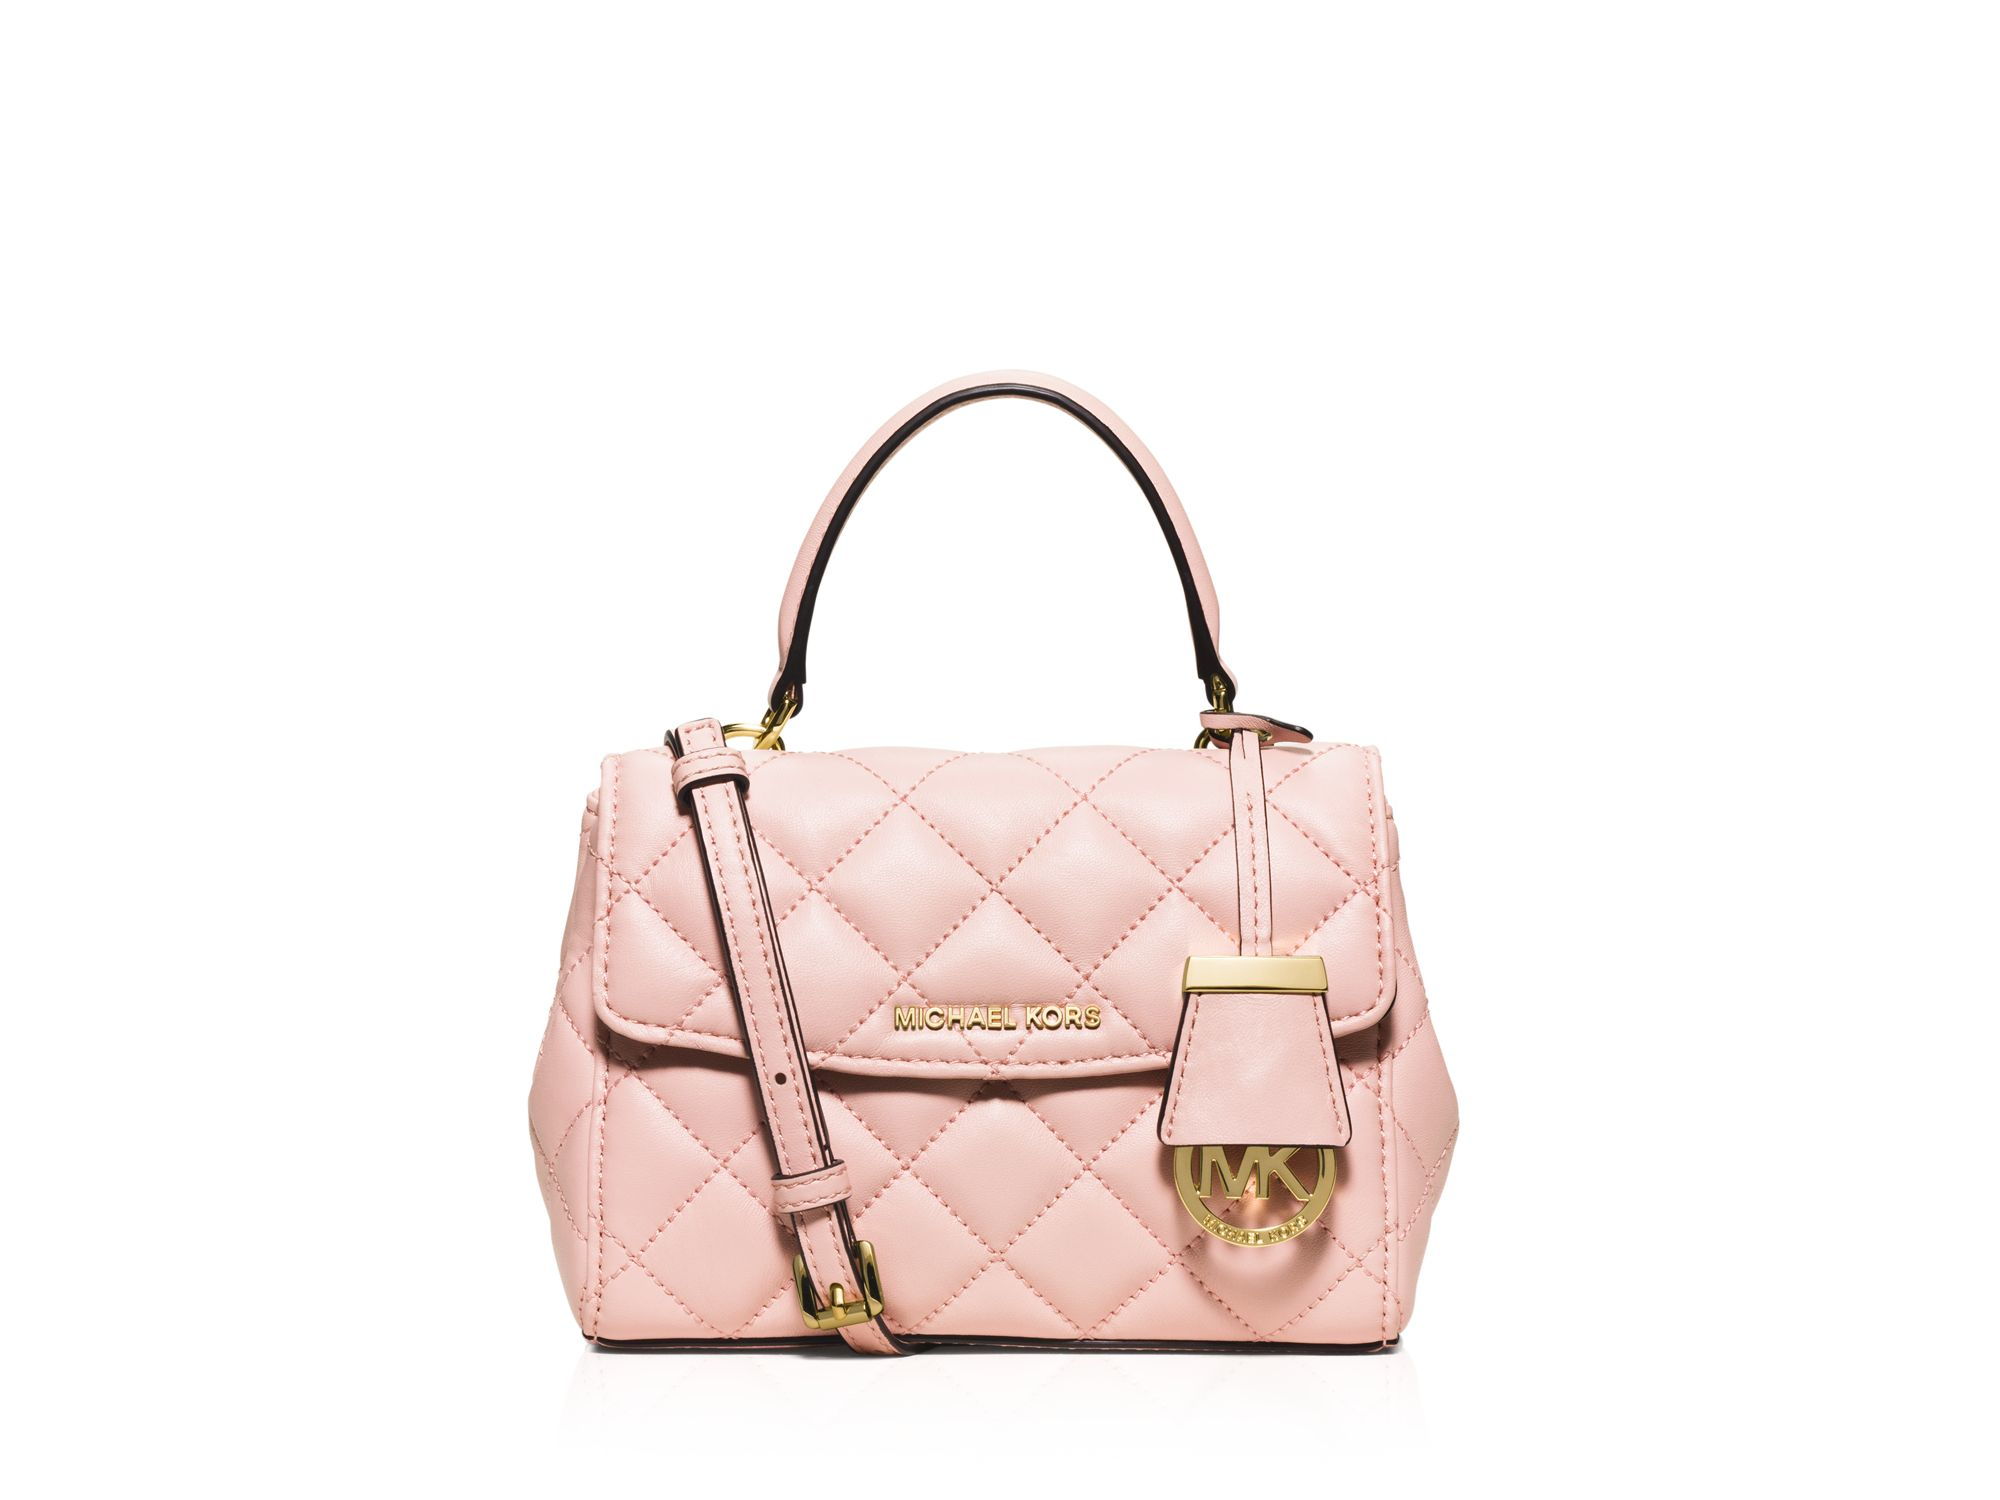 117496a09f5d Gallery. Previously sold at  Bloomingdale s · Women s Michael Kors Quilted  Bag ...